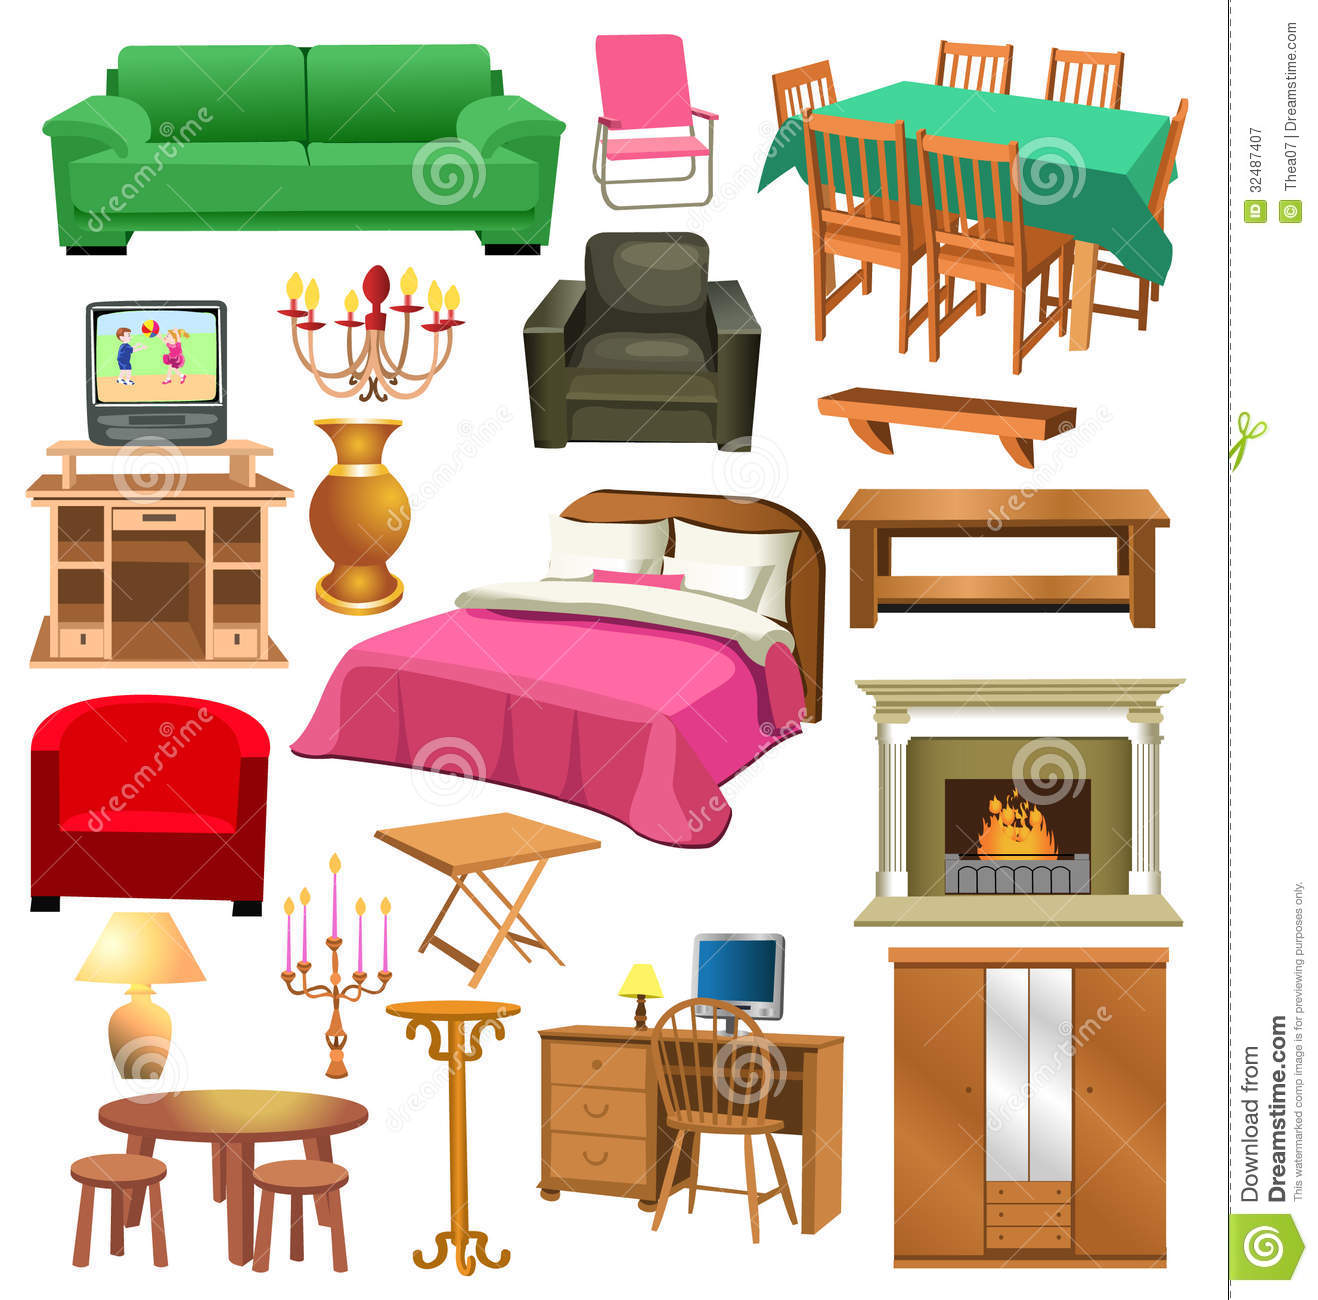 Living room furniture - Living Room Furniture Royalty Free Stock Photography - Image: 32487407